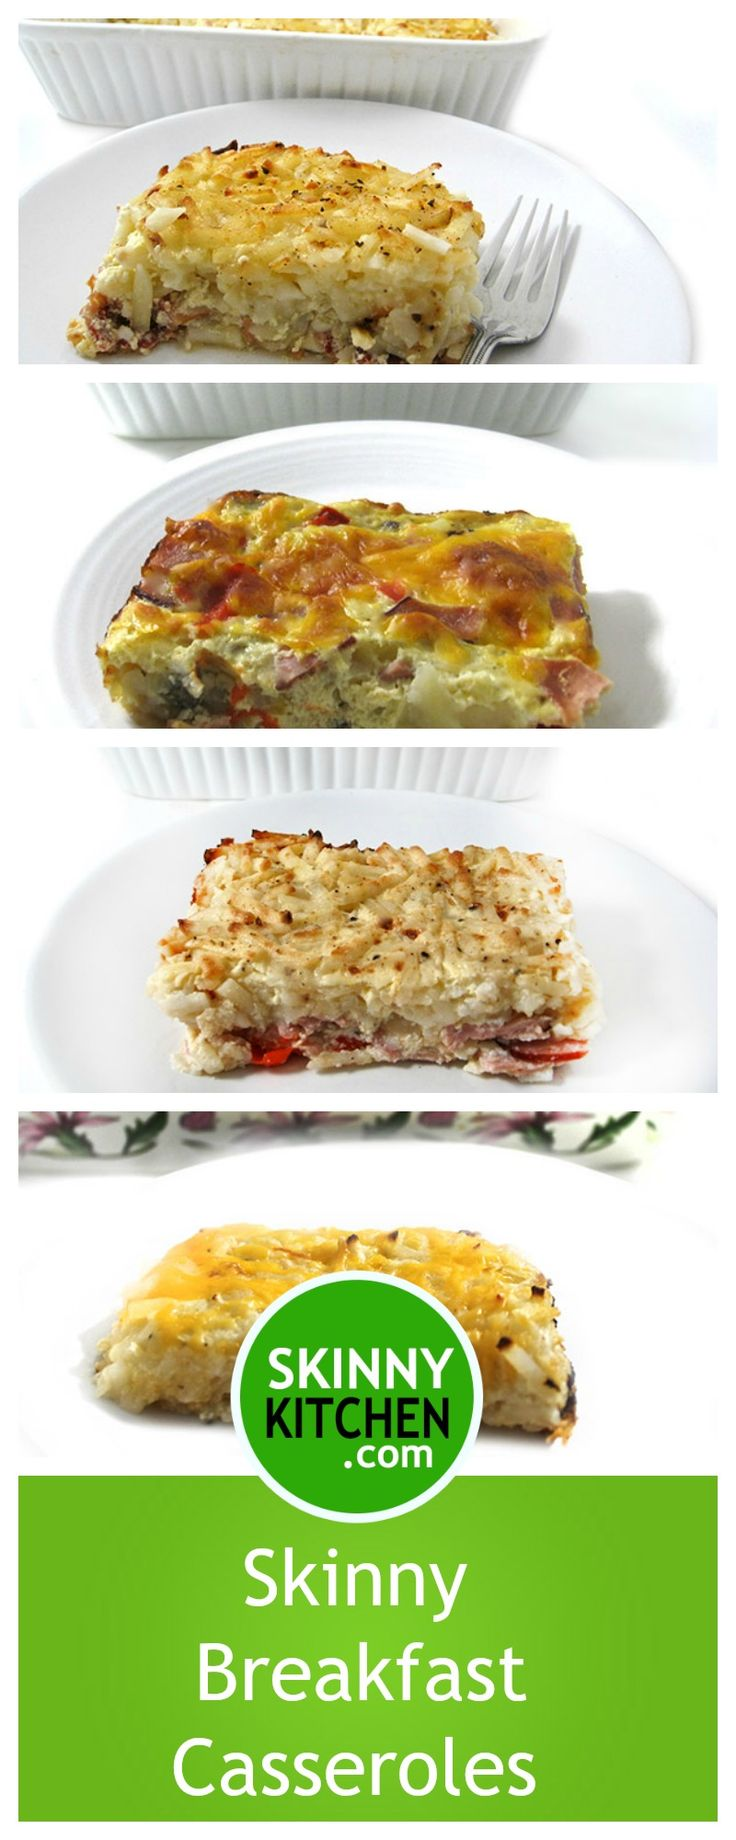 Skinny Breakfast Casseroles for the Holidays. Are you wanting to make something really yummy and easy for breakfast/brunch this holiday weekend? Check out these 4 fantastic casseroles. http://www.skinnykitchen.com/recipes/skinny-breakfast-casseroles-for-the-holidays/